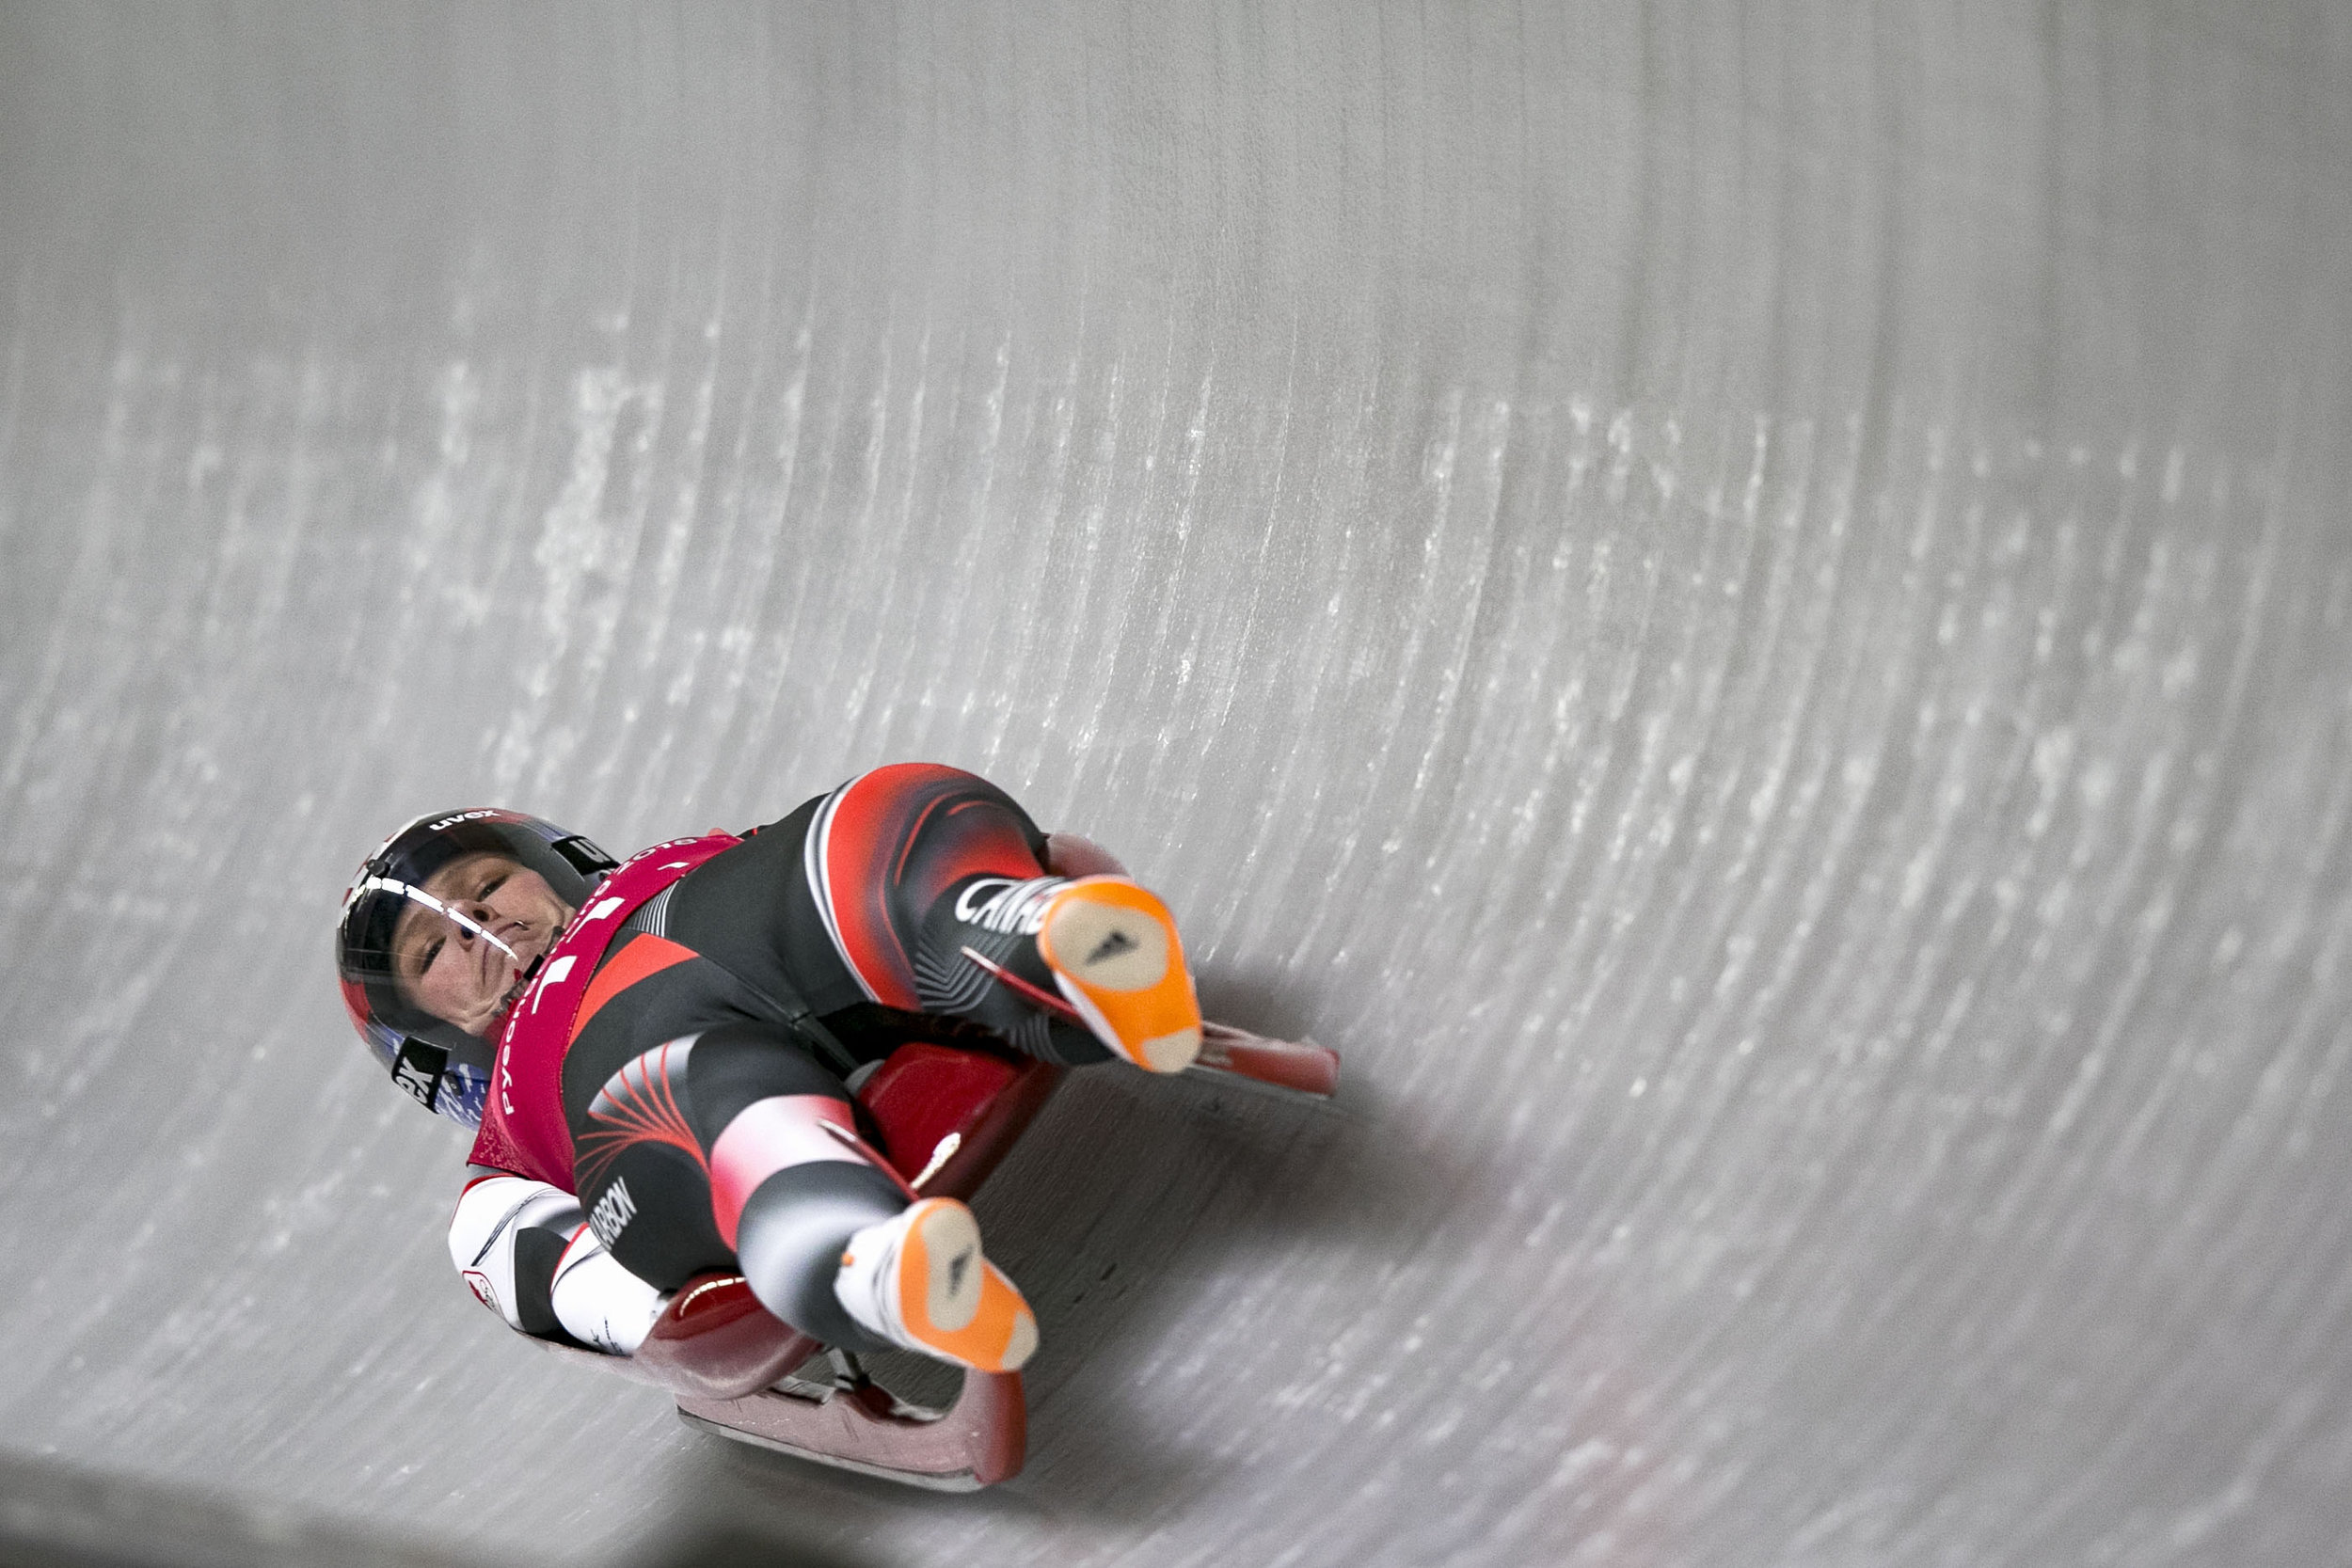 Canada's relay team luger Alex Gough, searches for the target as she slides around the final corner, Feb. 15 at Alpensia Sliding Centre, PyeongChang, South Korea. Canada's relay team of Alex Gough, Sam Edney, Tristan Walker, and Justin Snith won sliver with a final time of 2:24.872, all the way down to one hundredth of a second made the difference between, first and second place.